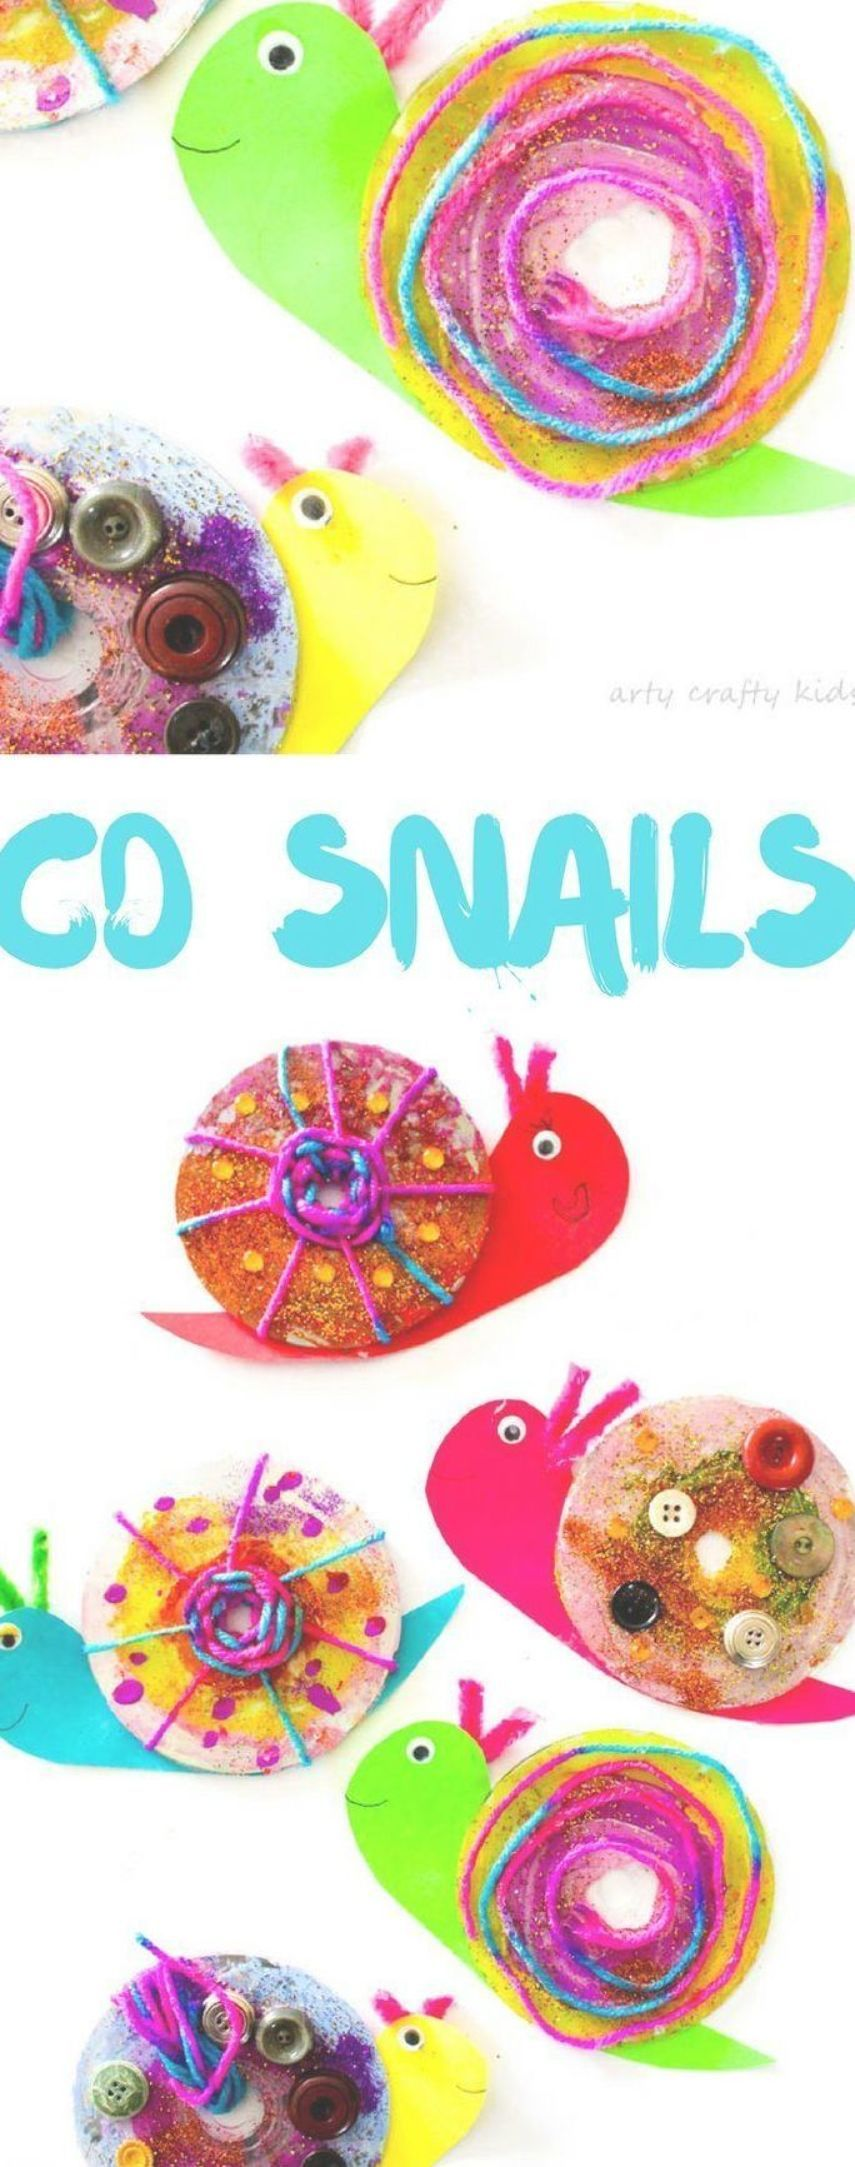 Recycled CD Snail craft for Kids. Super easy, super cute and perfect for preschoolers! #minibeasts #easycraftsforkids #kidscrafts #craftsideasforkids #craftykids #artycraftykids #recycledcd